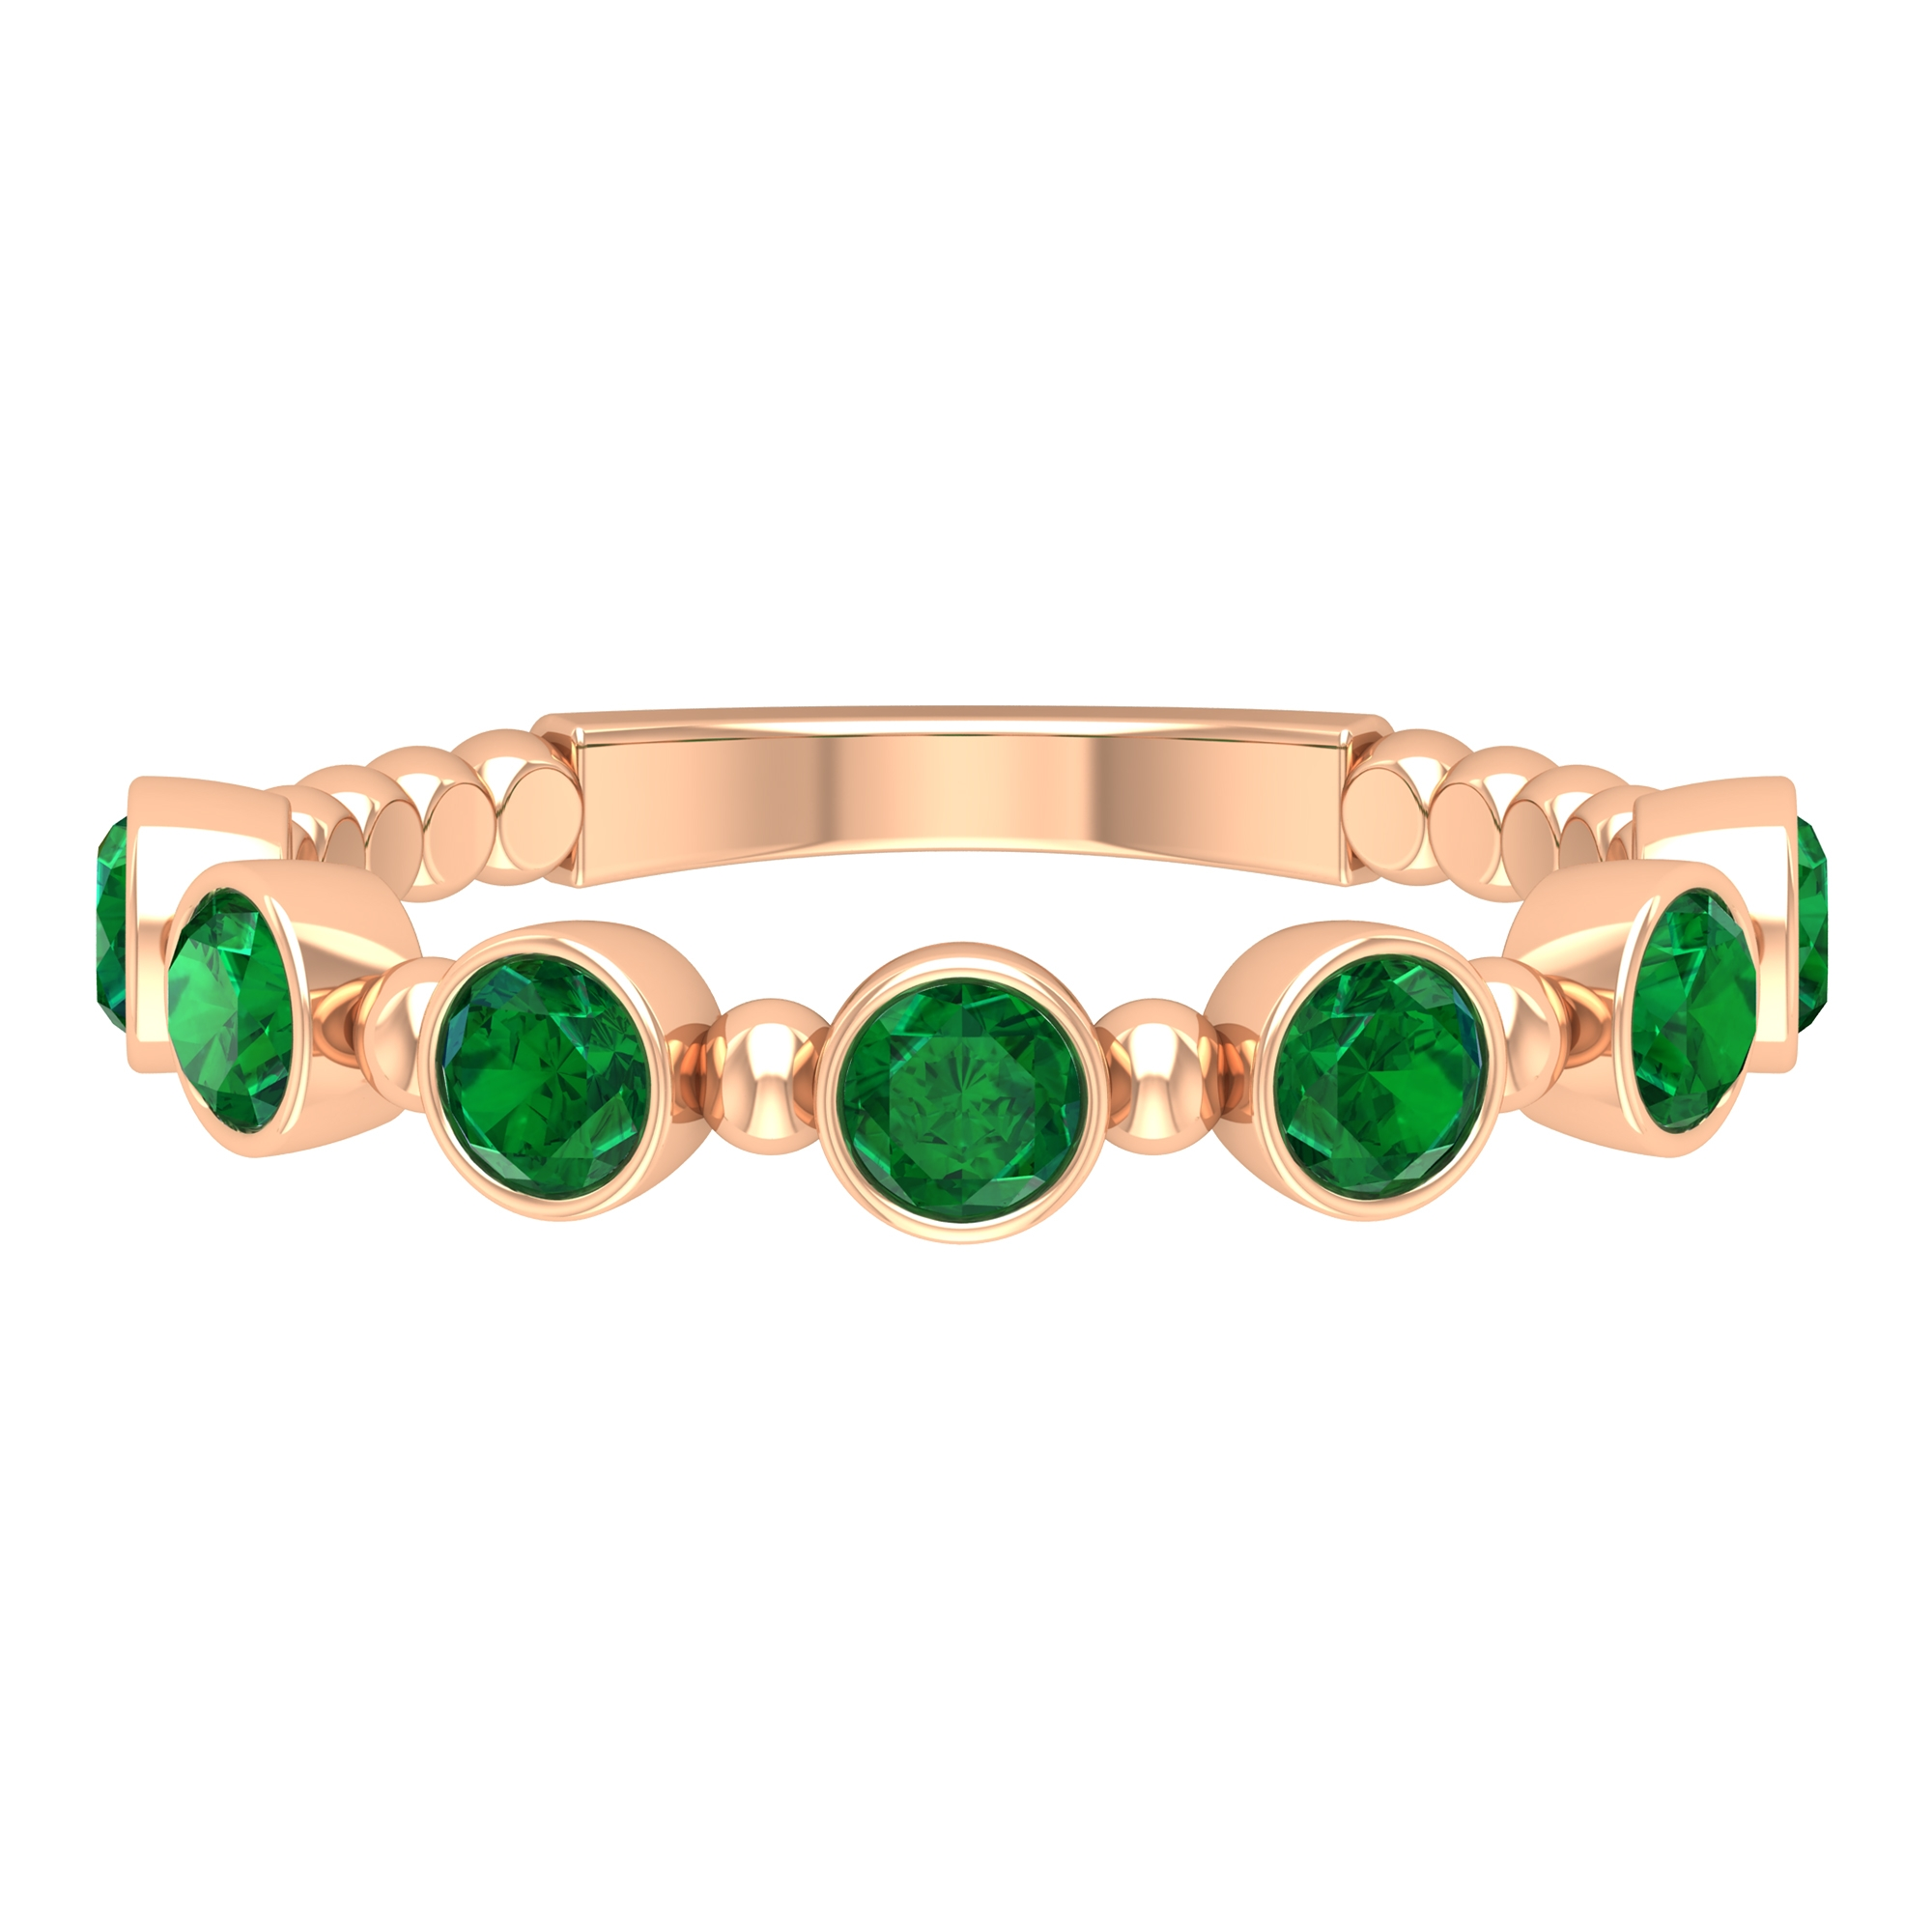 3/4 CT Bezel Set Round Emerald Stackable Promise Ring with Gold Beads